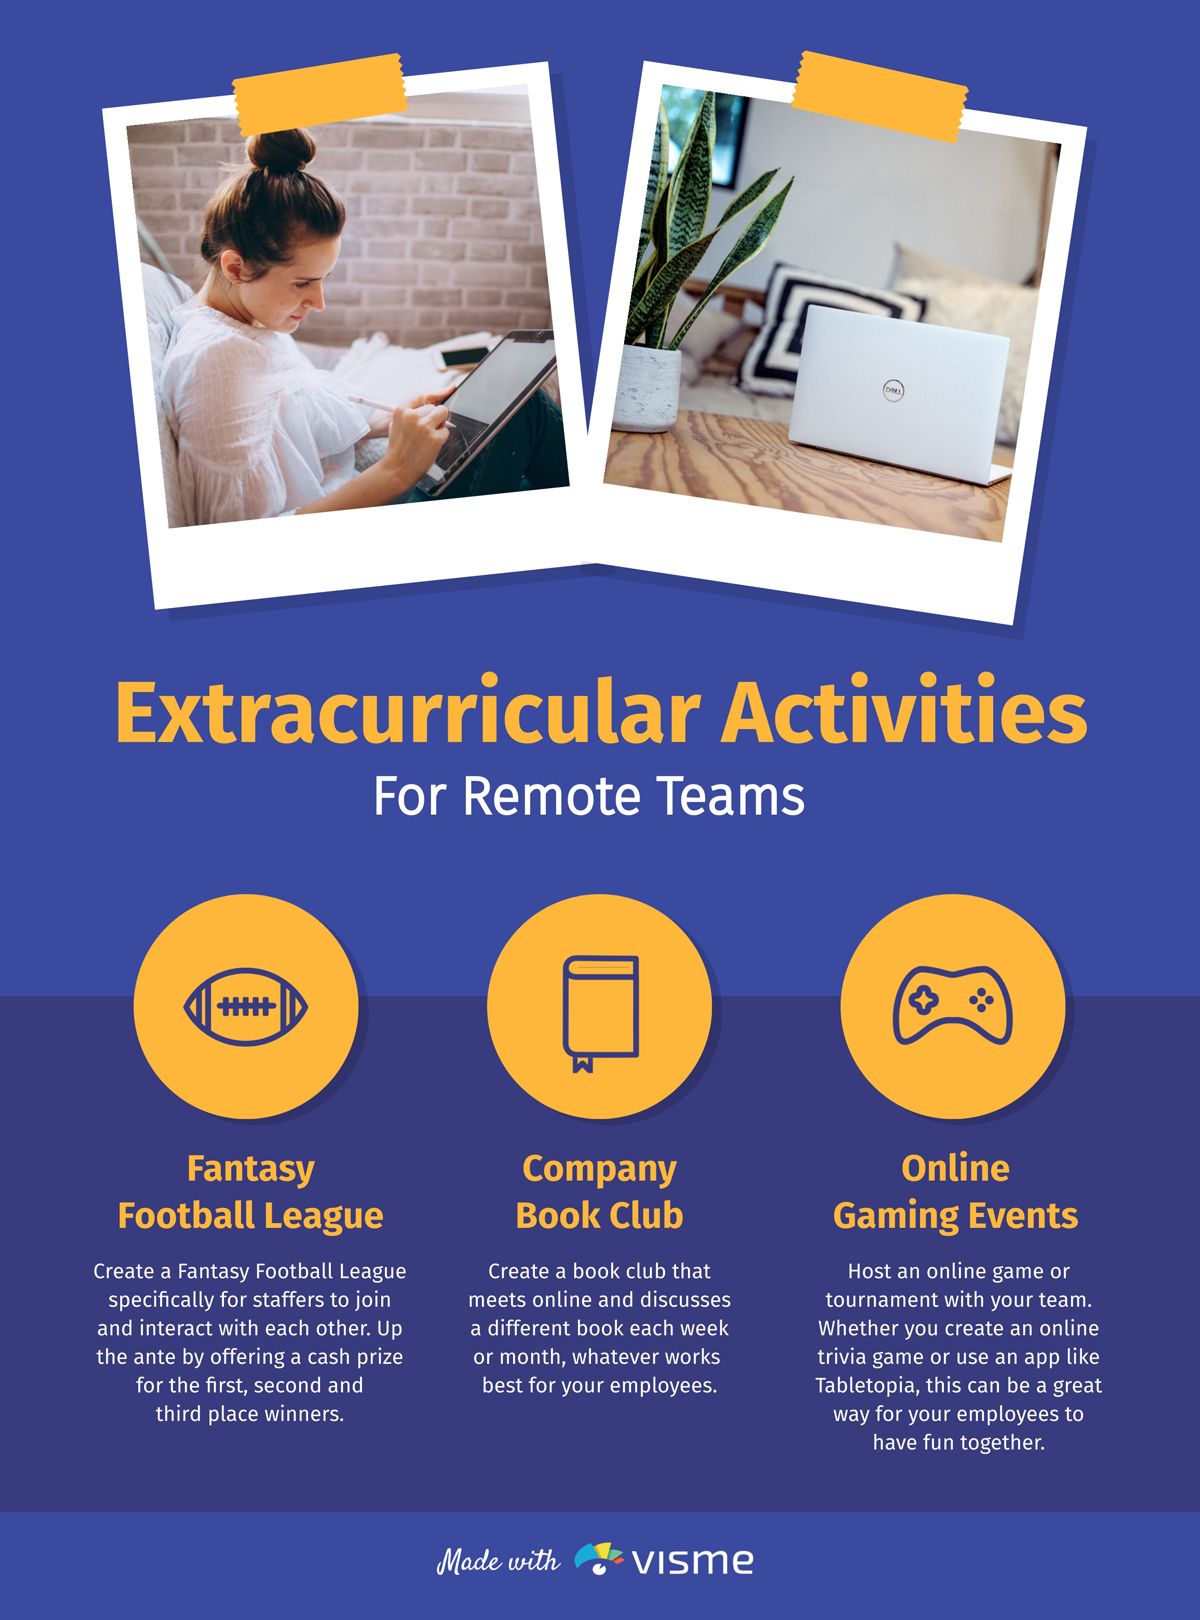 An infographic showcasing extracurricular activities for remote teams.